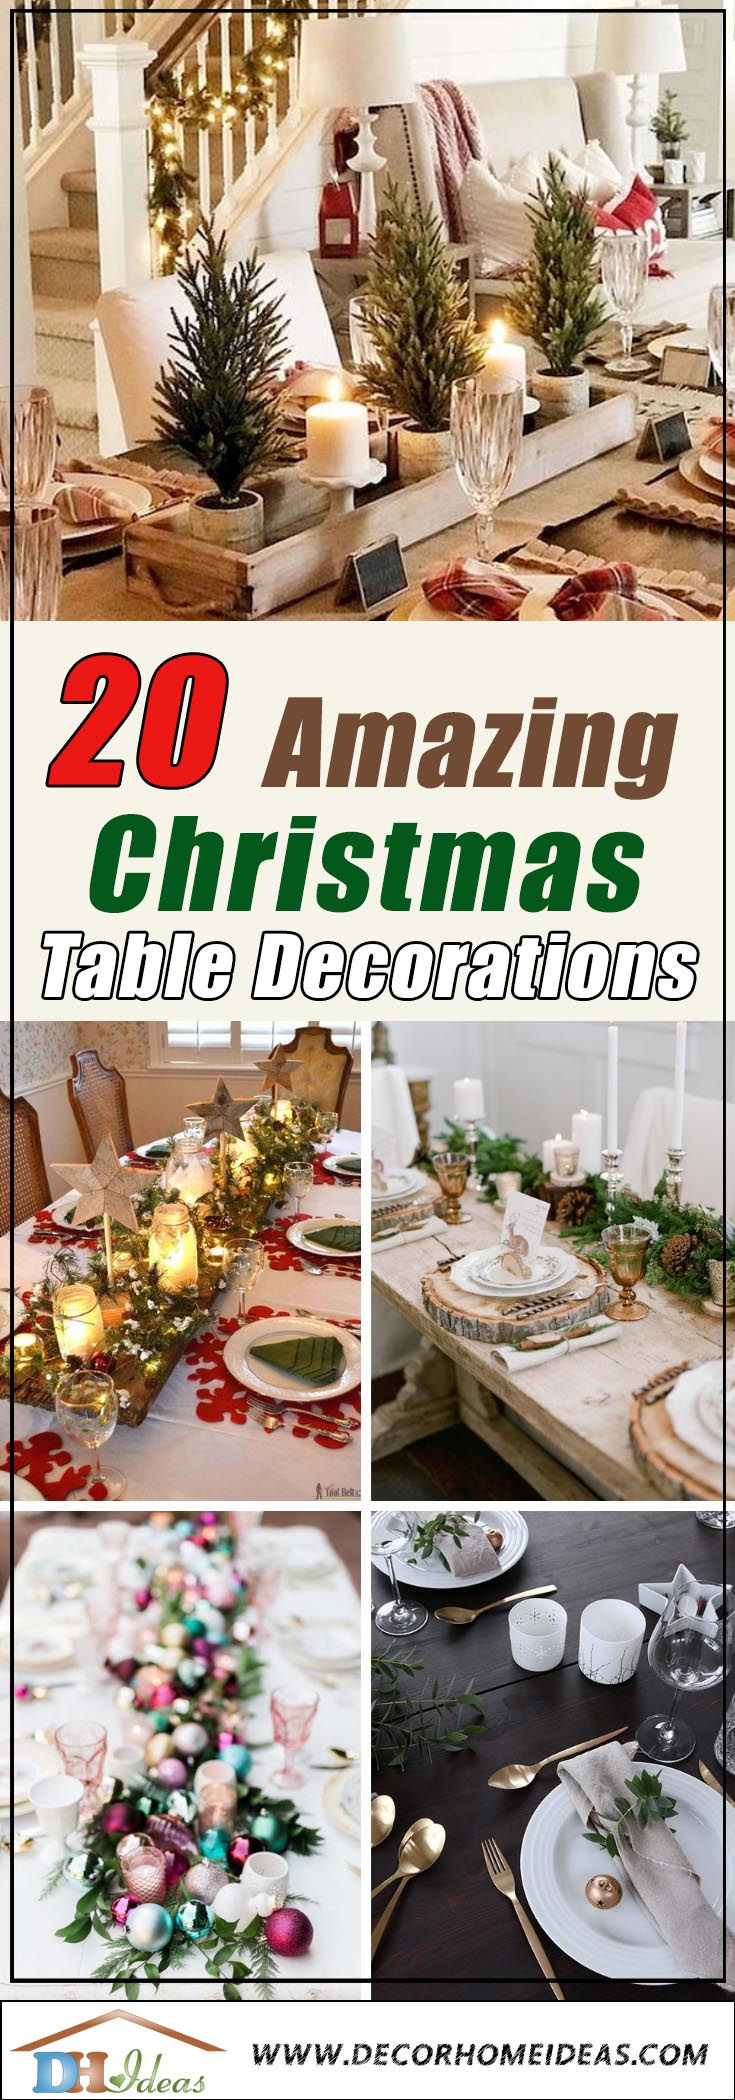 Best Christmas Table Decoration #Christmas #Christmasdecor #table #tabledecor #decorhomeideas